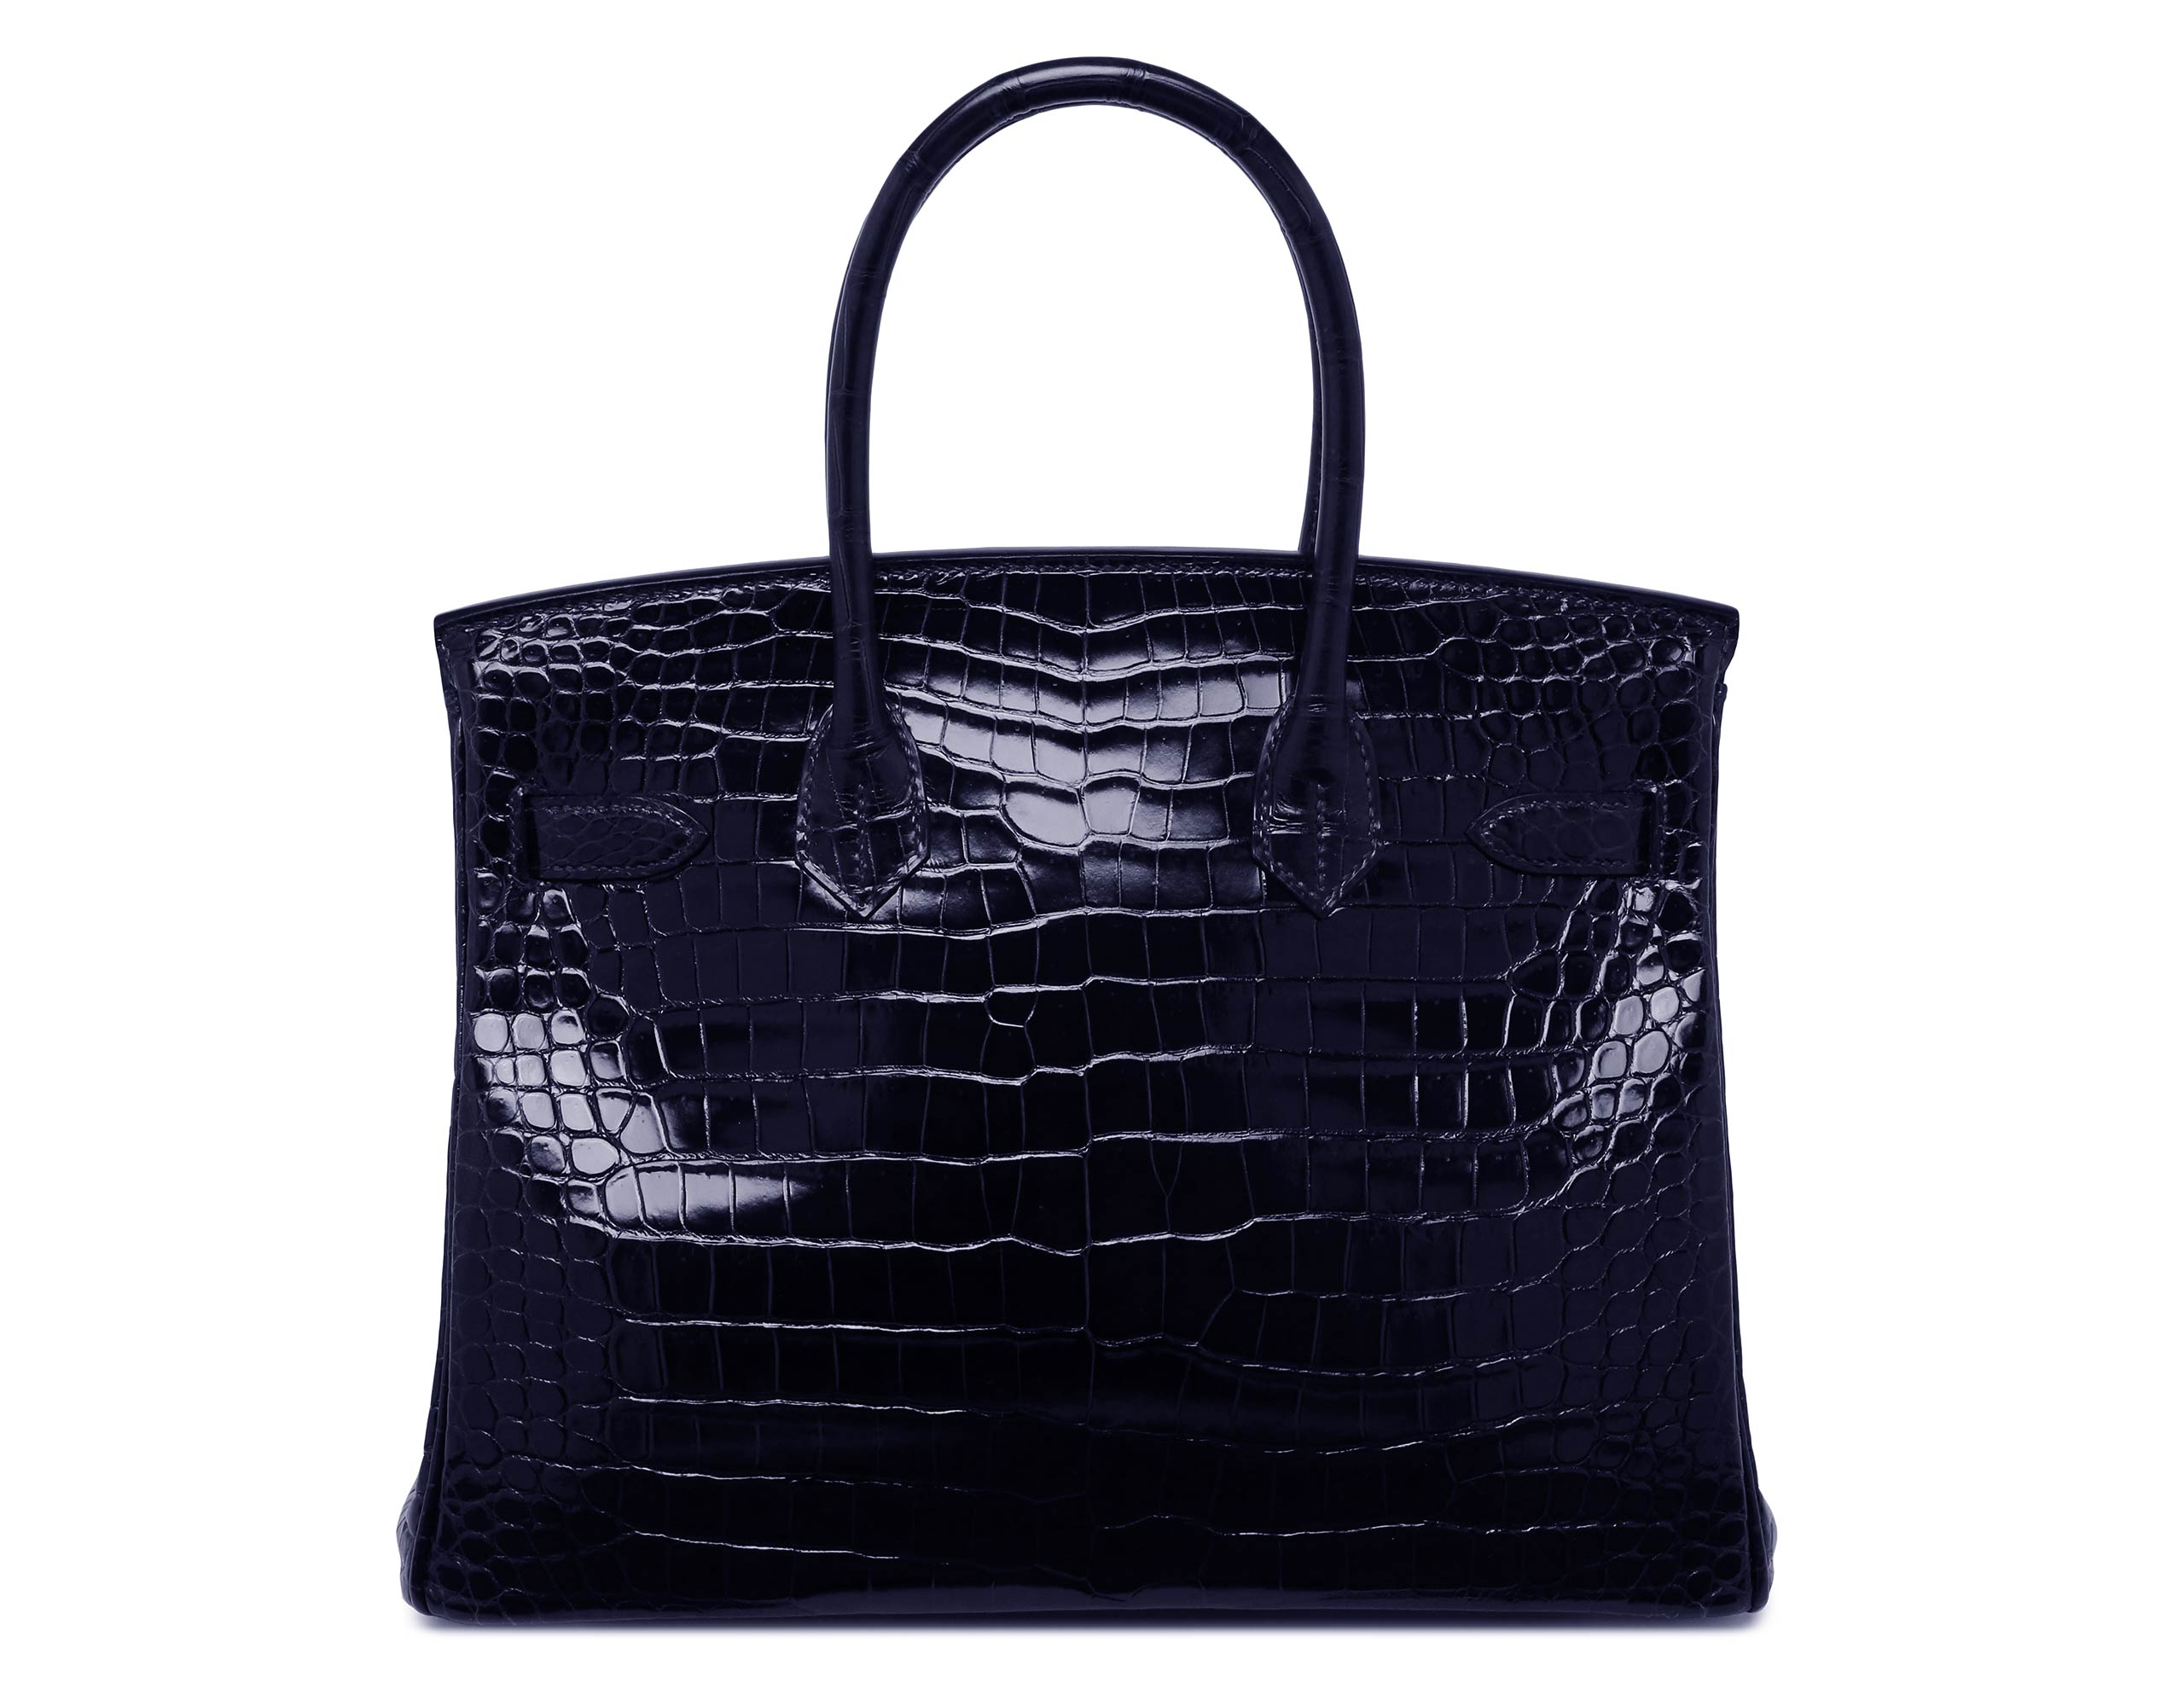 Hermes Birkin Blue Marine Shiny Porosus Croc with Palladium